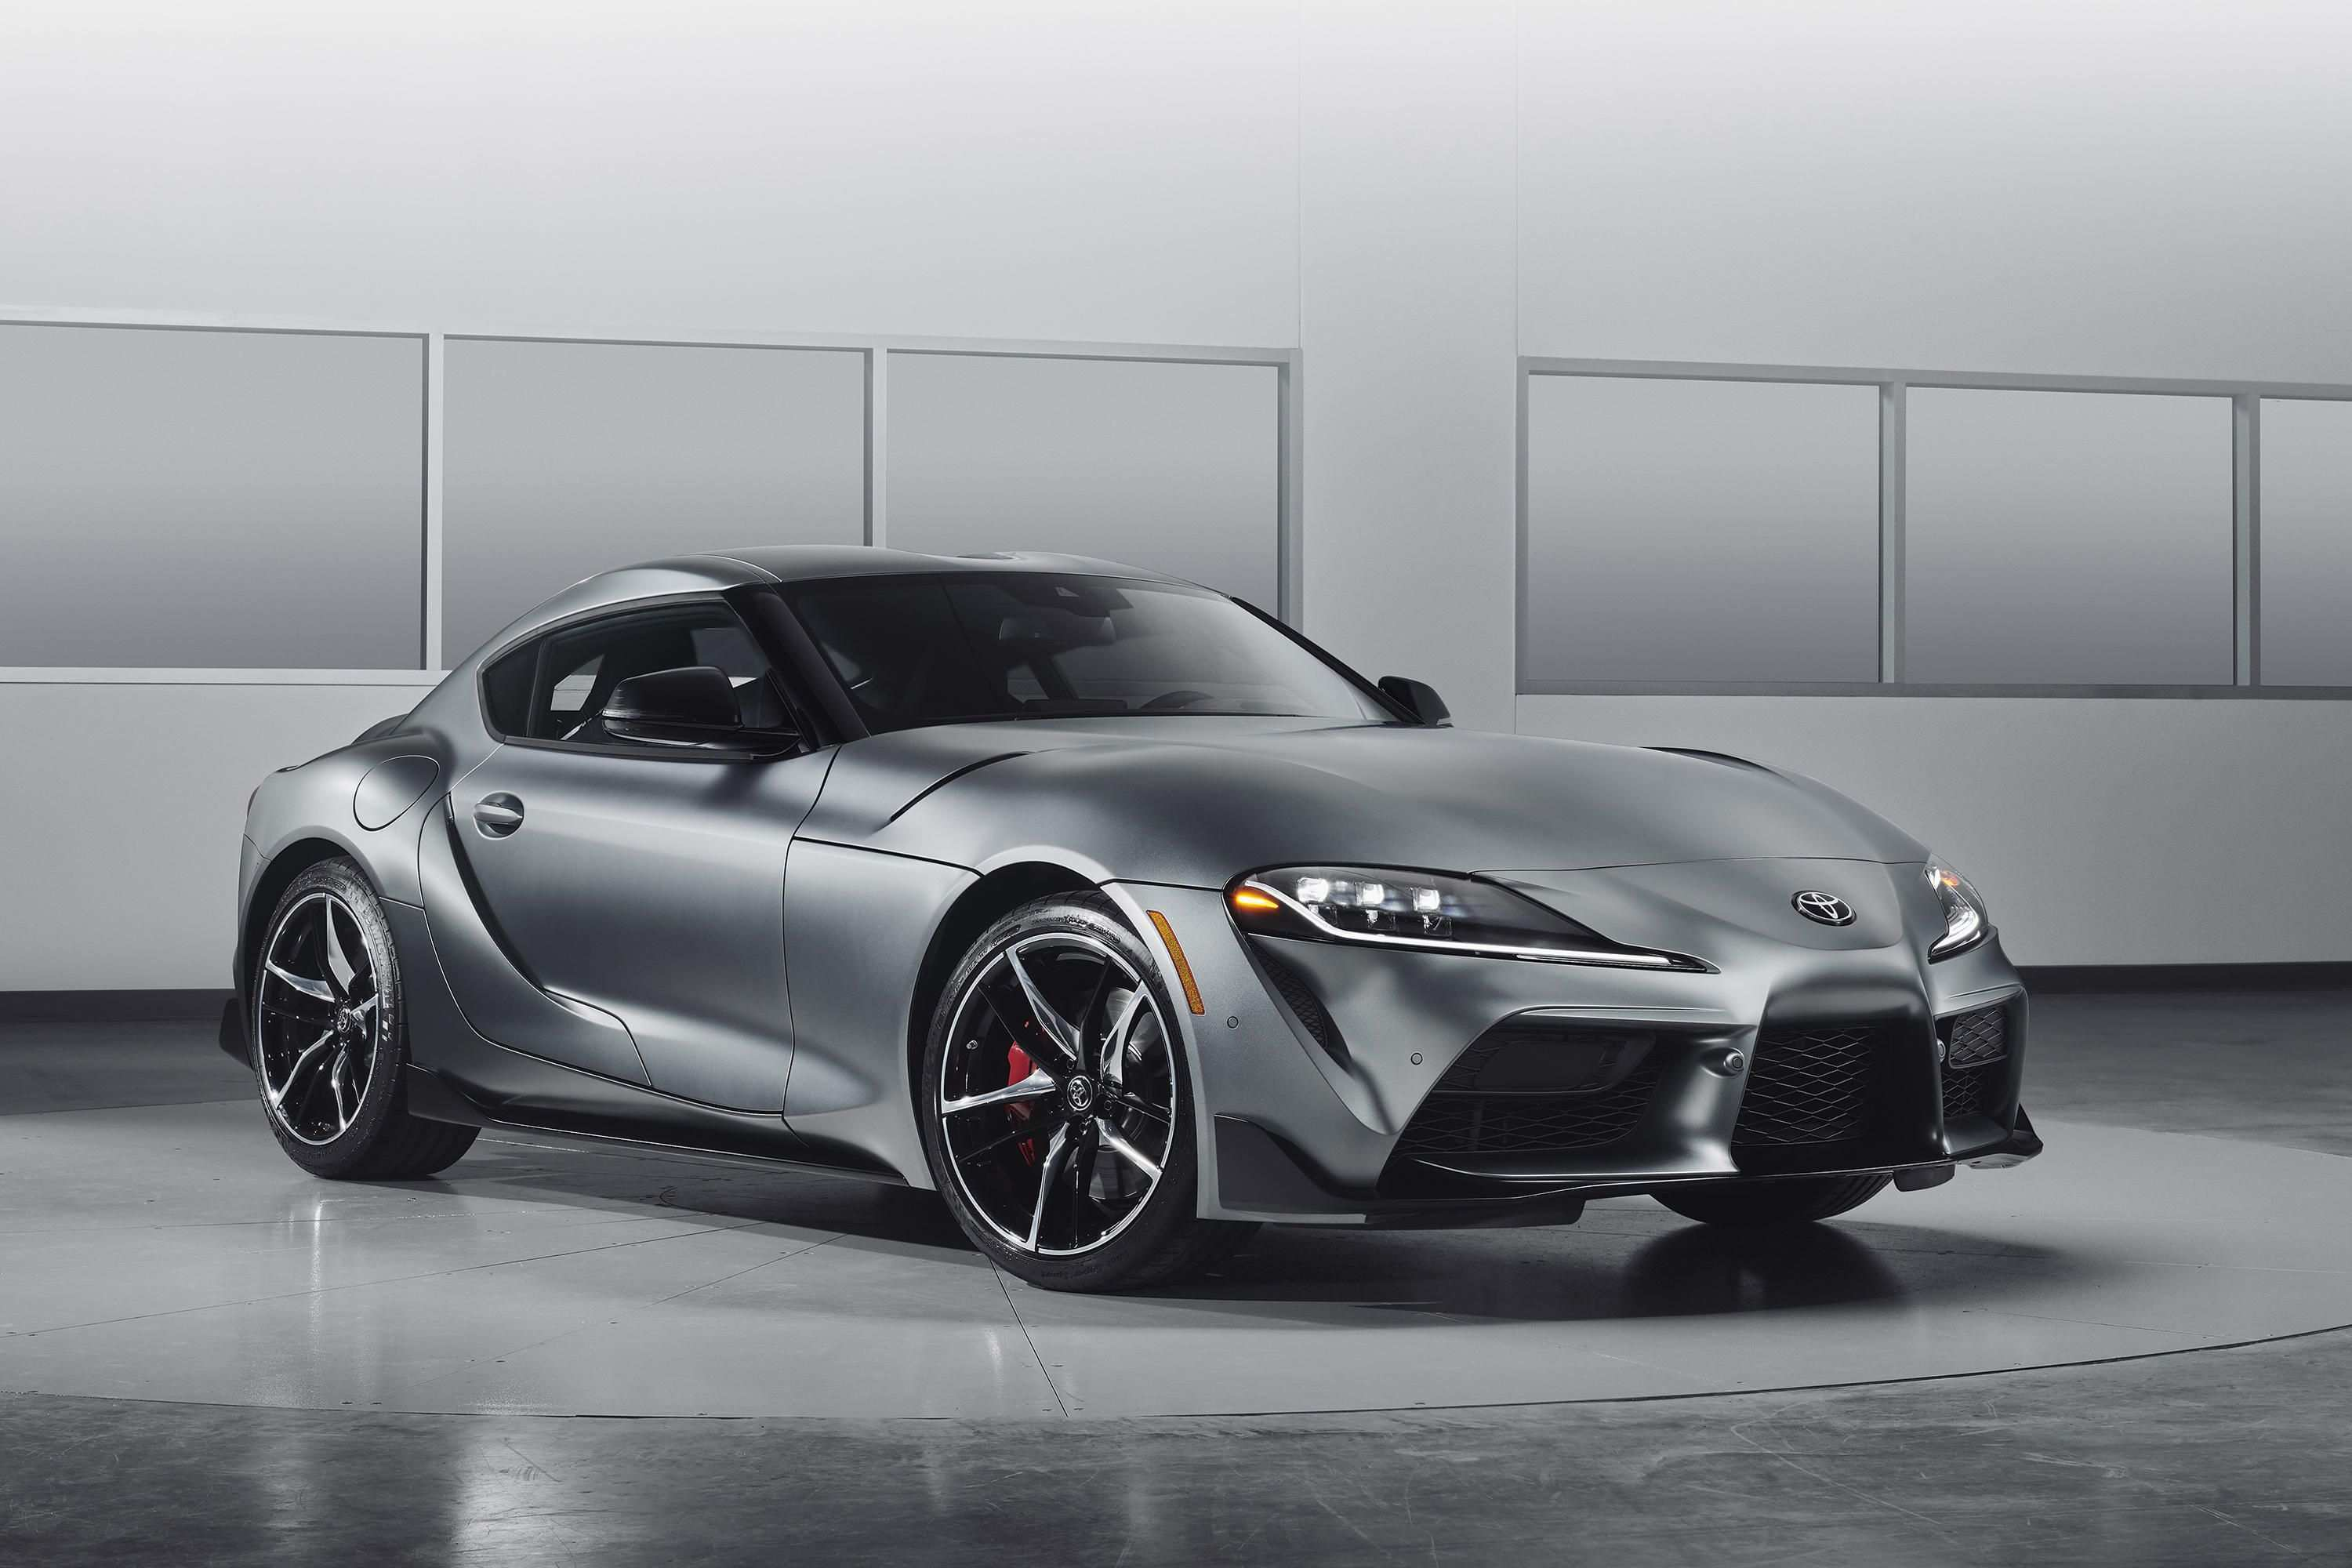 26 New How Much Is The 2020 Toyota Supra Interior with How Much Is The 2020 Toyota Supra